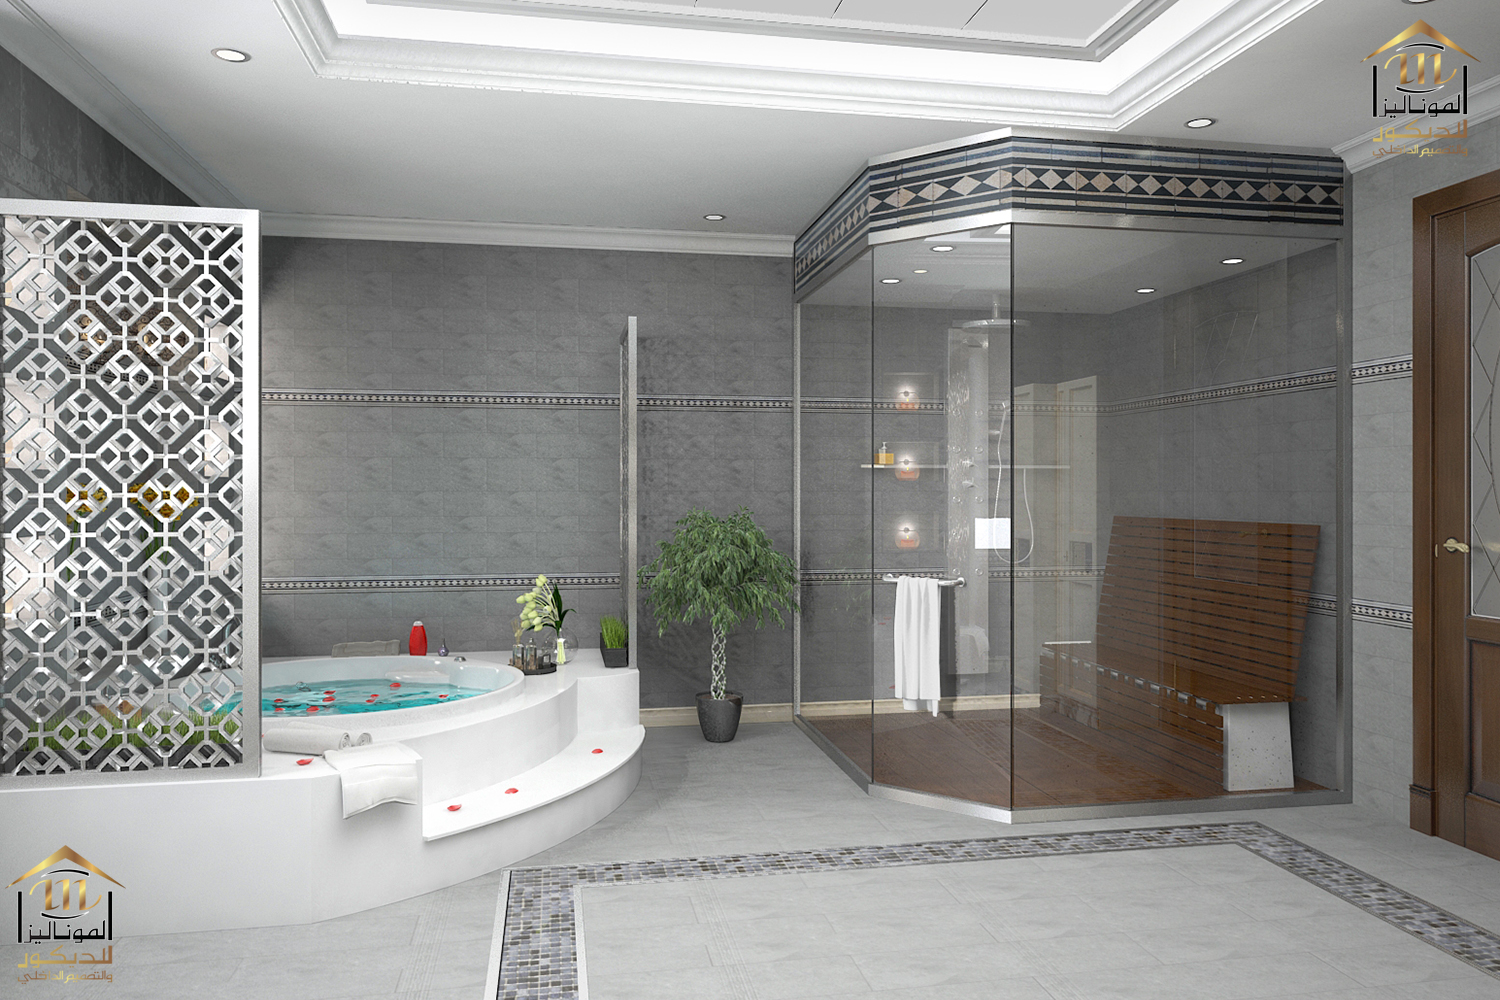 almonaliza group_decoration&interior design_bathrooms (14).jpg